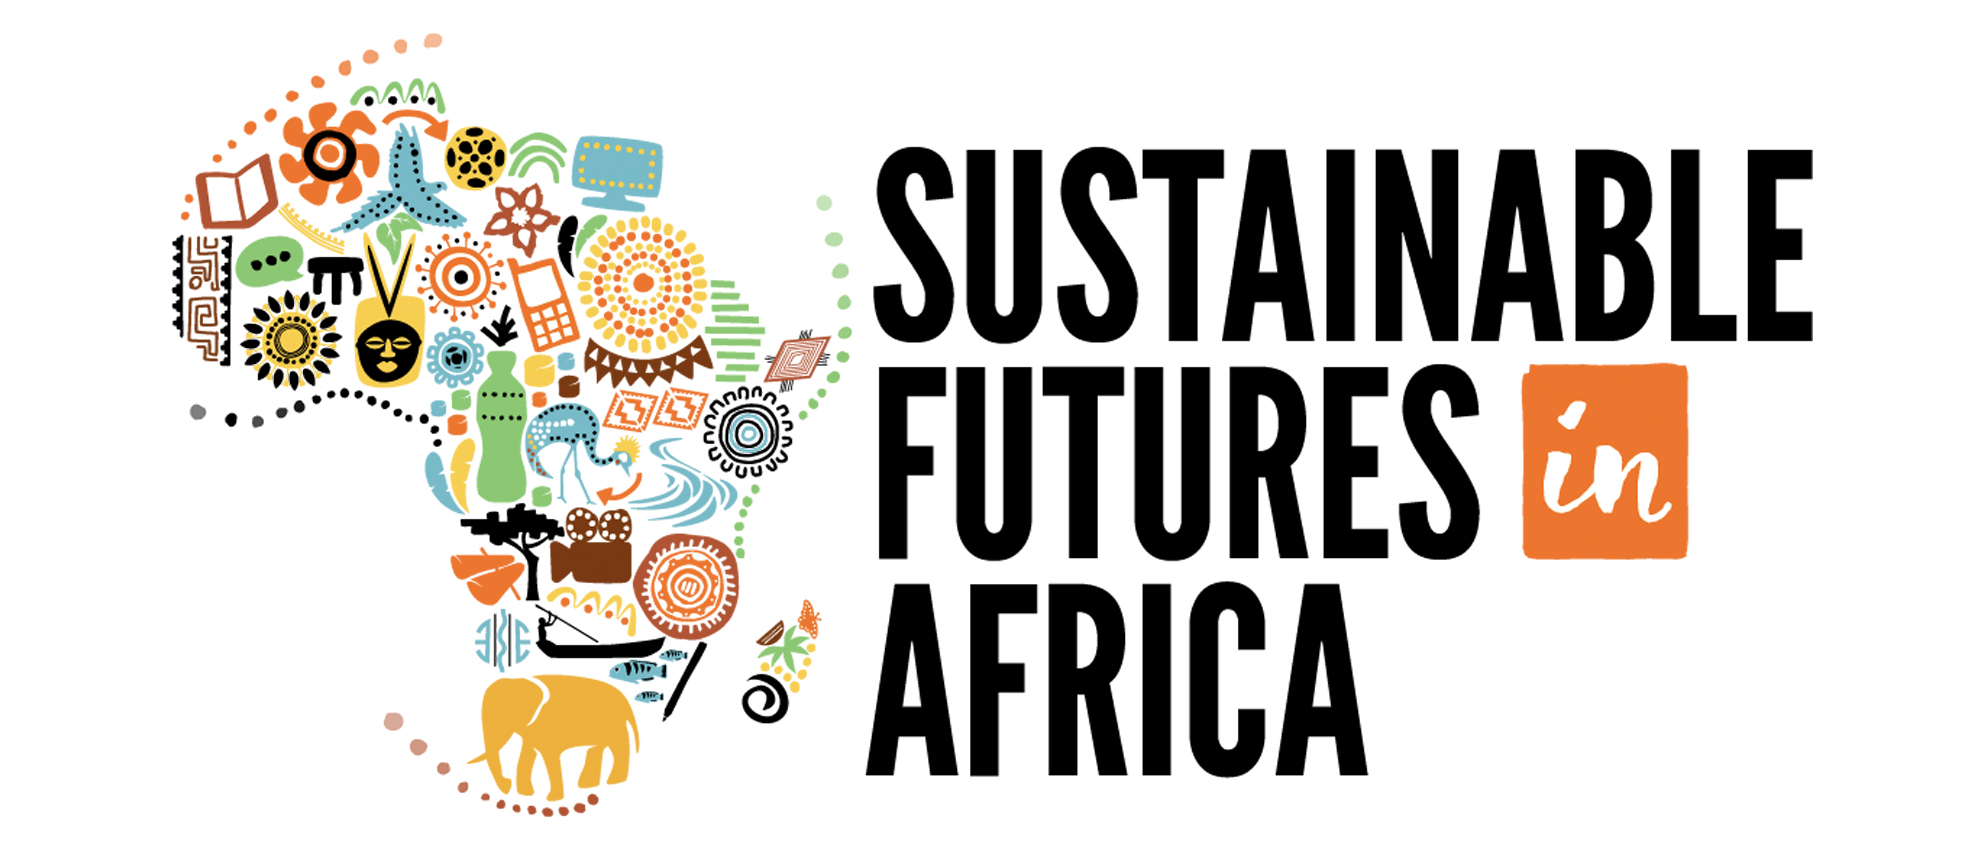 Sustainable Futures Africa Network logo